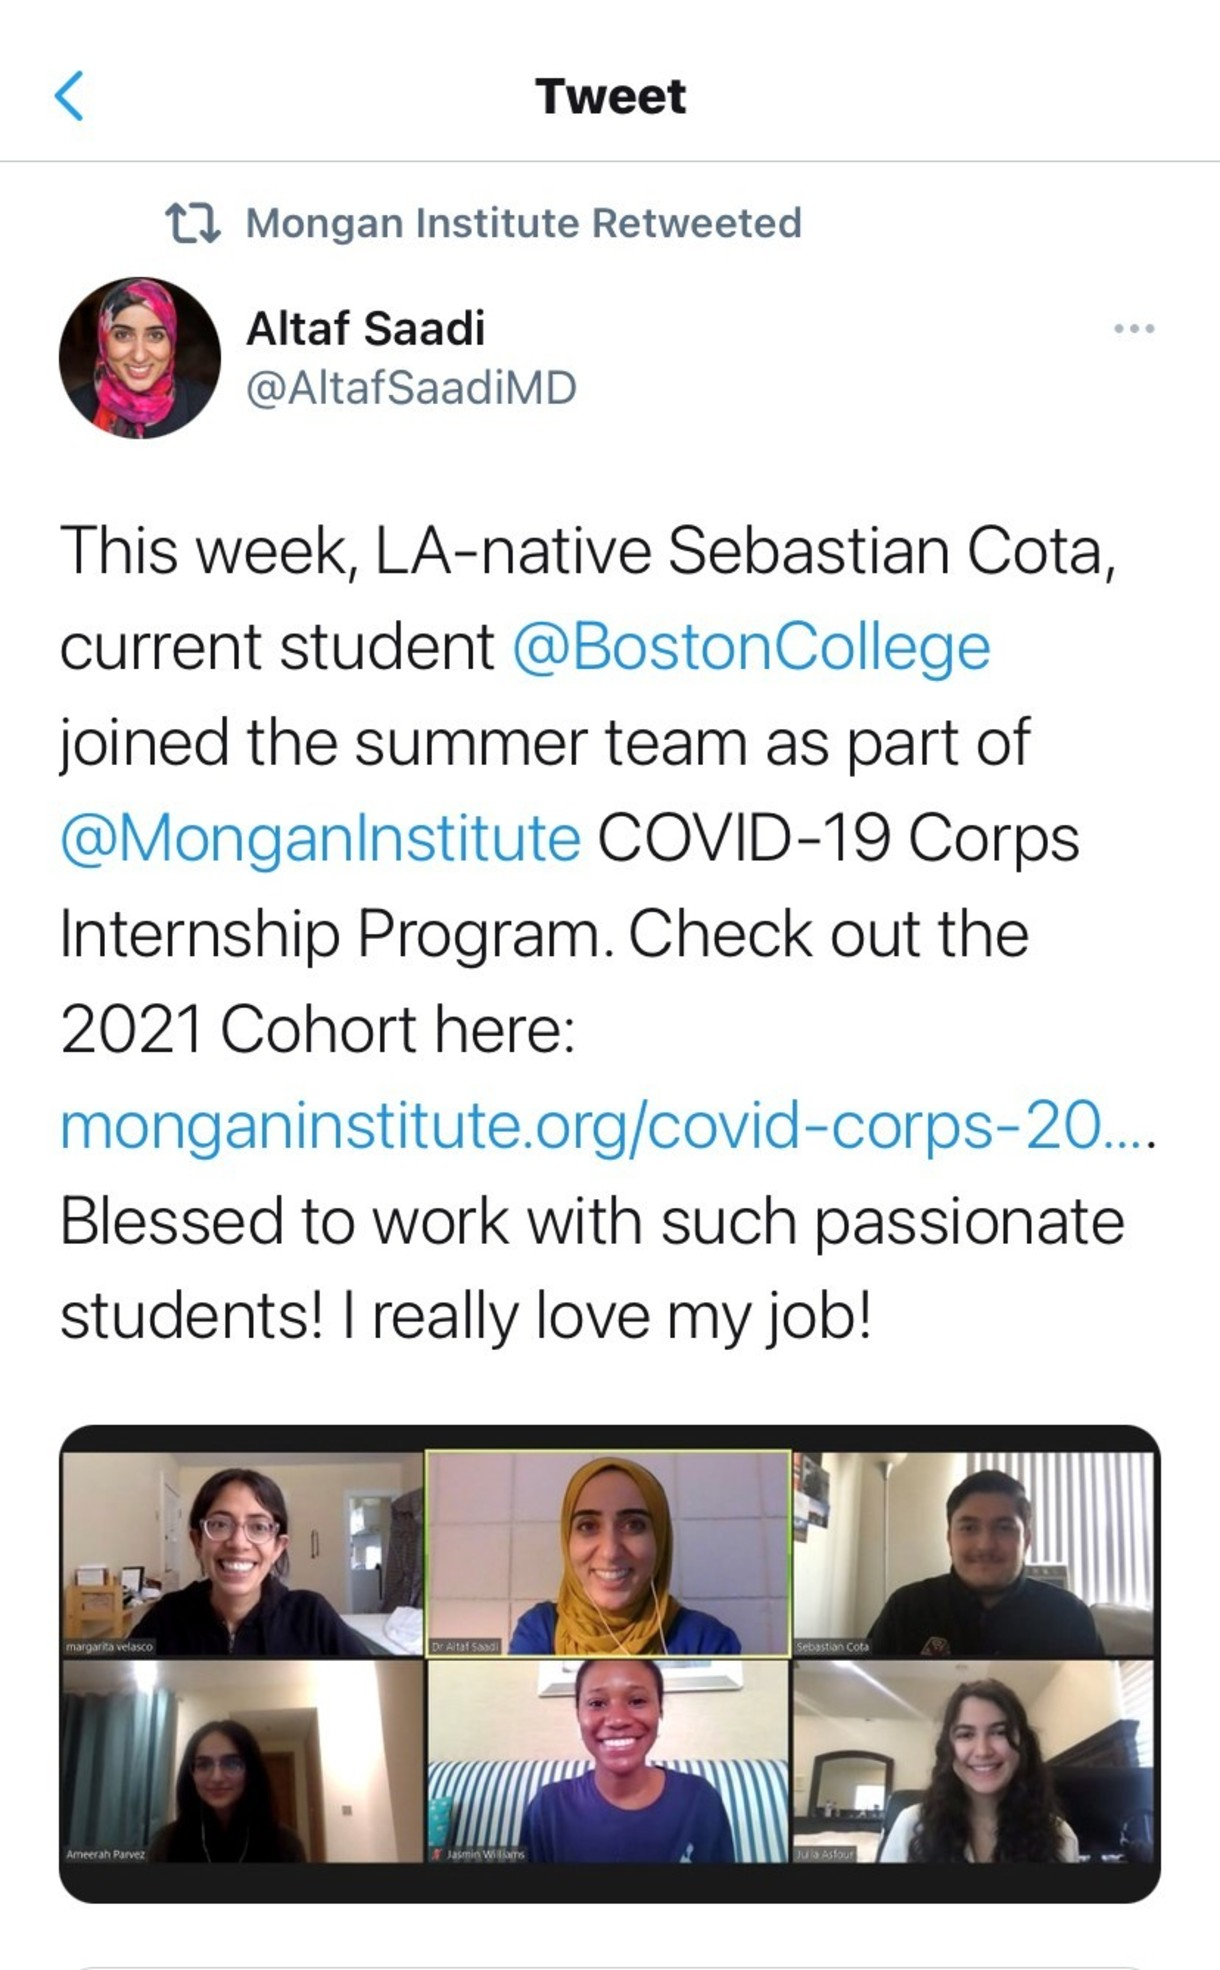 This week, LA-native Sebastian Cota, current student @BostonCollege joined the summer team as part of @MonganInstitute COVID-19 Corps Internship Program. Check out the 2021 Cohort here: https://monganinstitute.org/covid-corps-2021-cohort. Blessed to work with such passionate students! I really love my job!